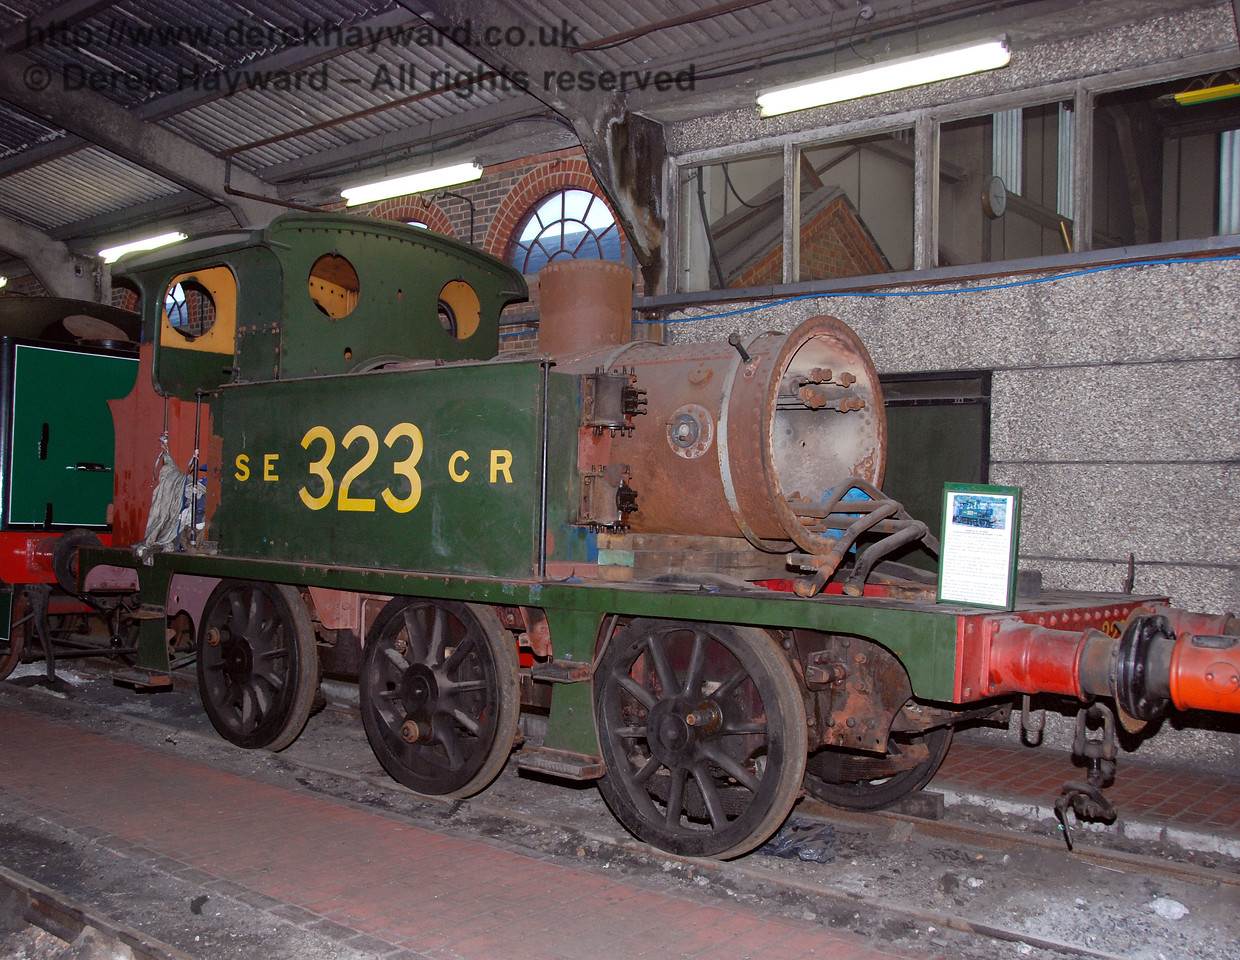 SECR Wainwright P-class tank 323, formerly Bluebell, pictured during a shunt in Sheffield Park Shed. 14.01.2007